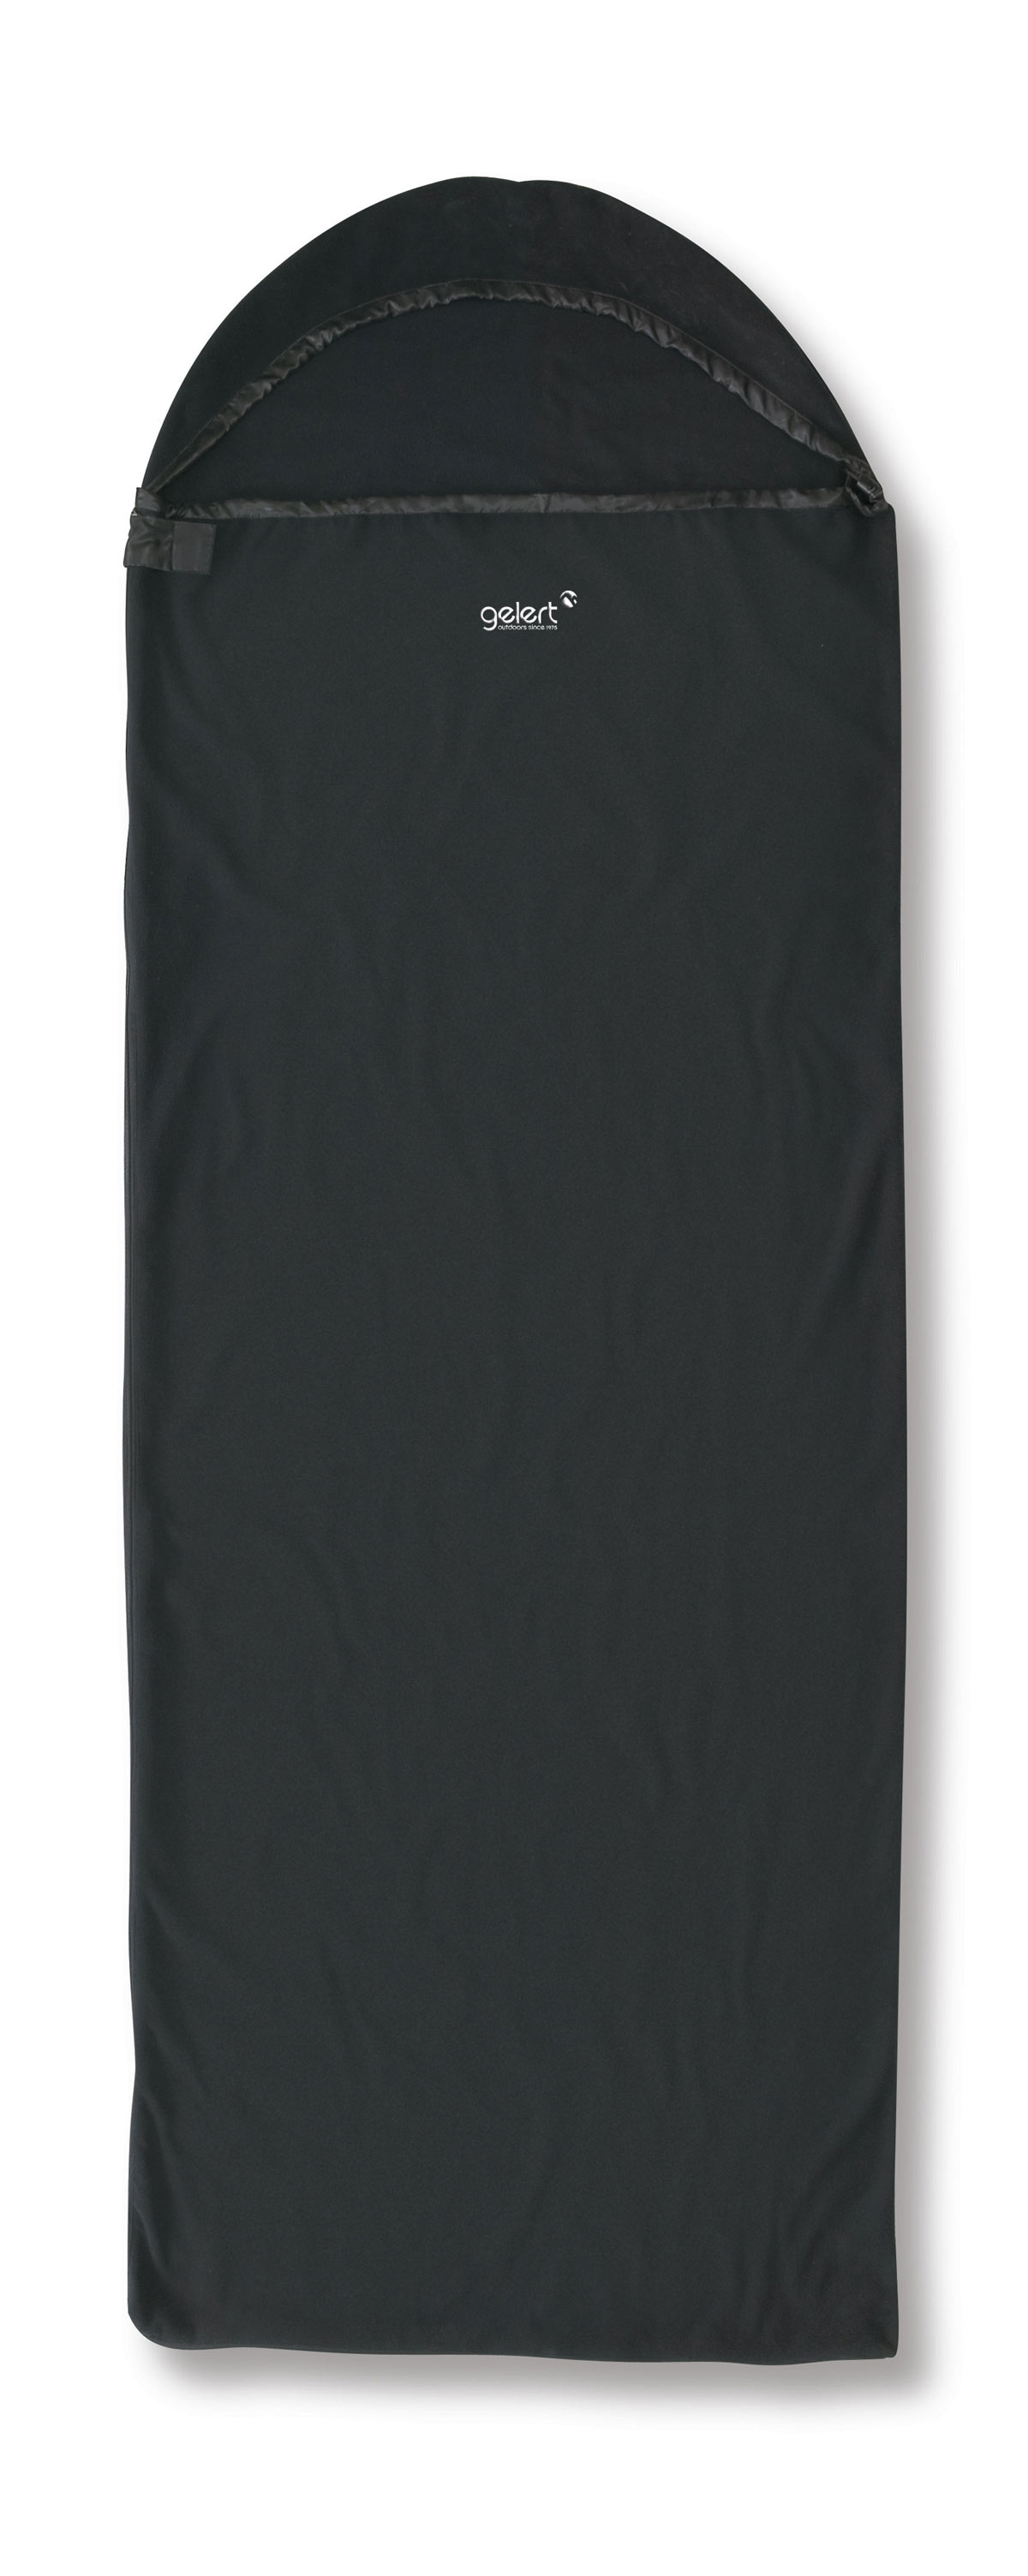 Gelert Microfleece Sleeping Bag Liner - Rectangular